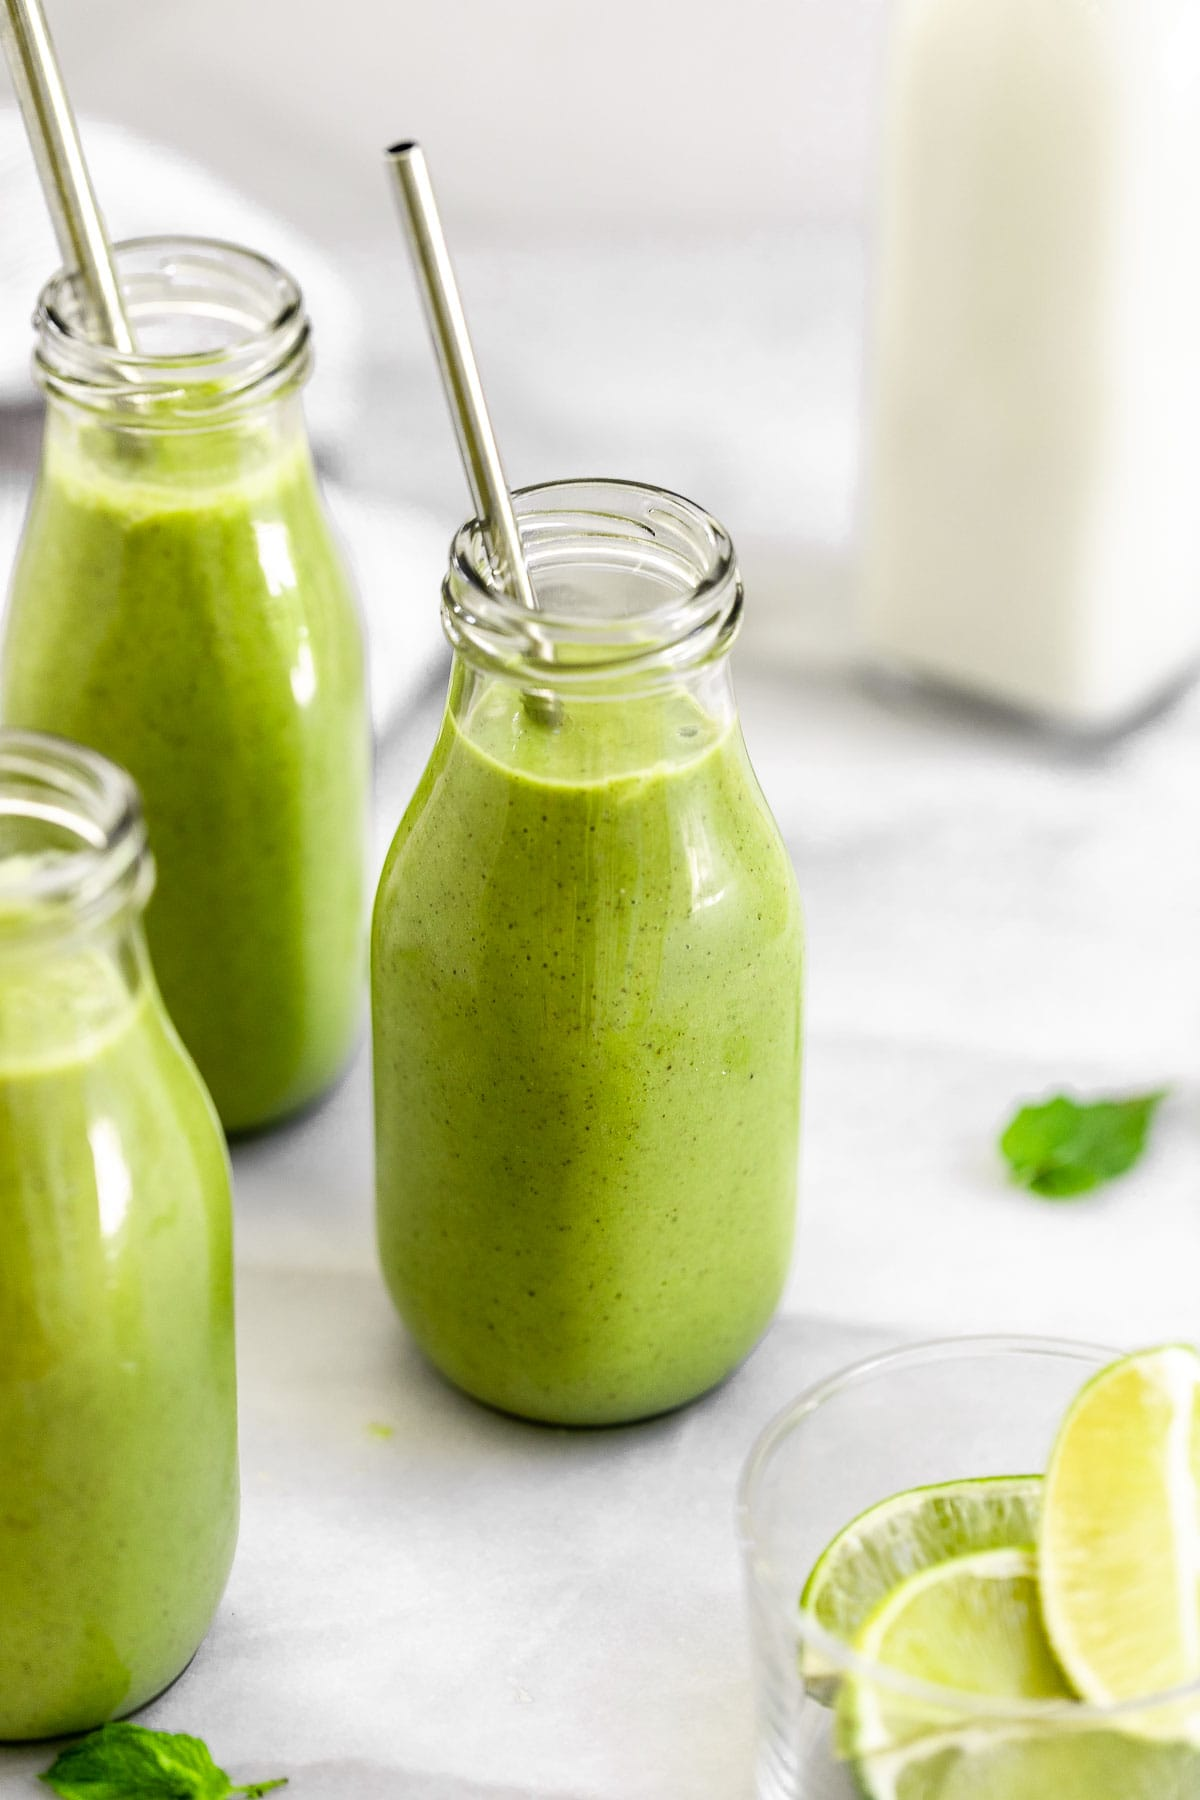 Healthy green smoothie with spinach in a glass jar.